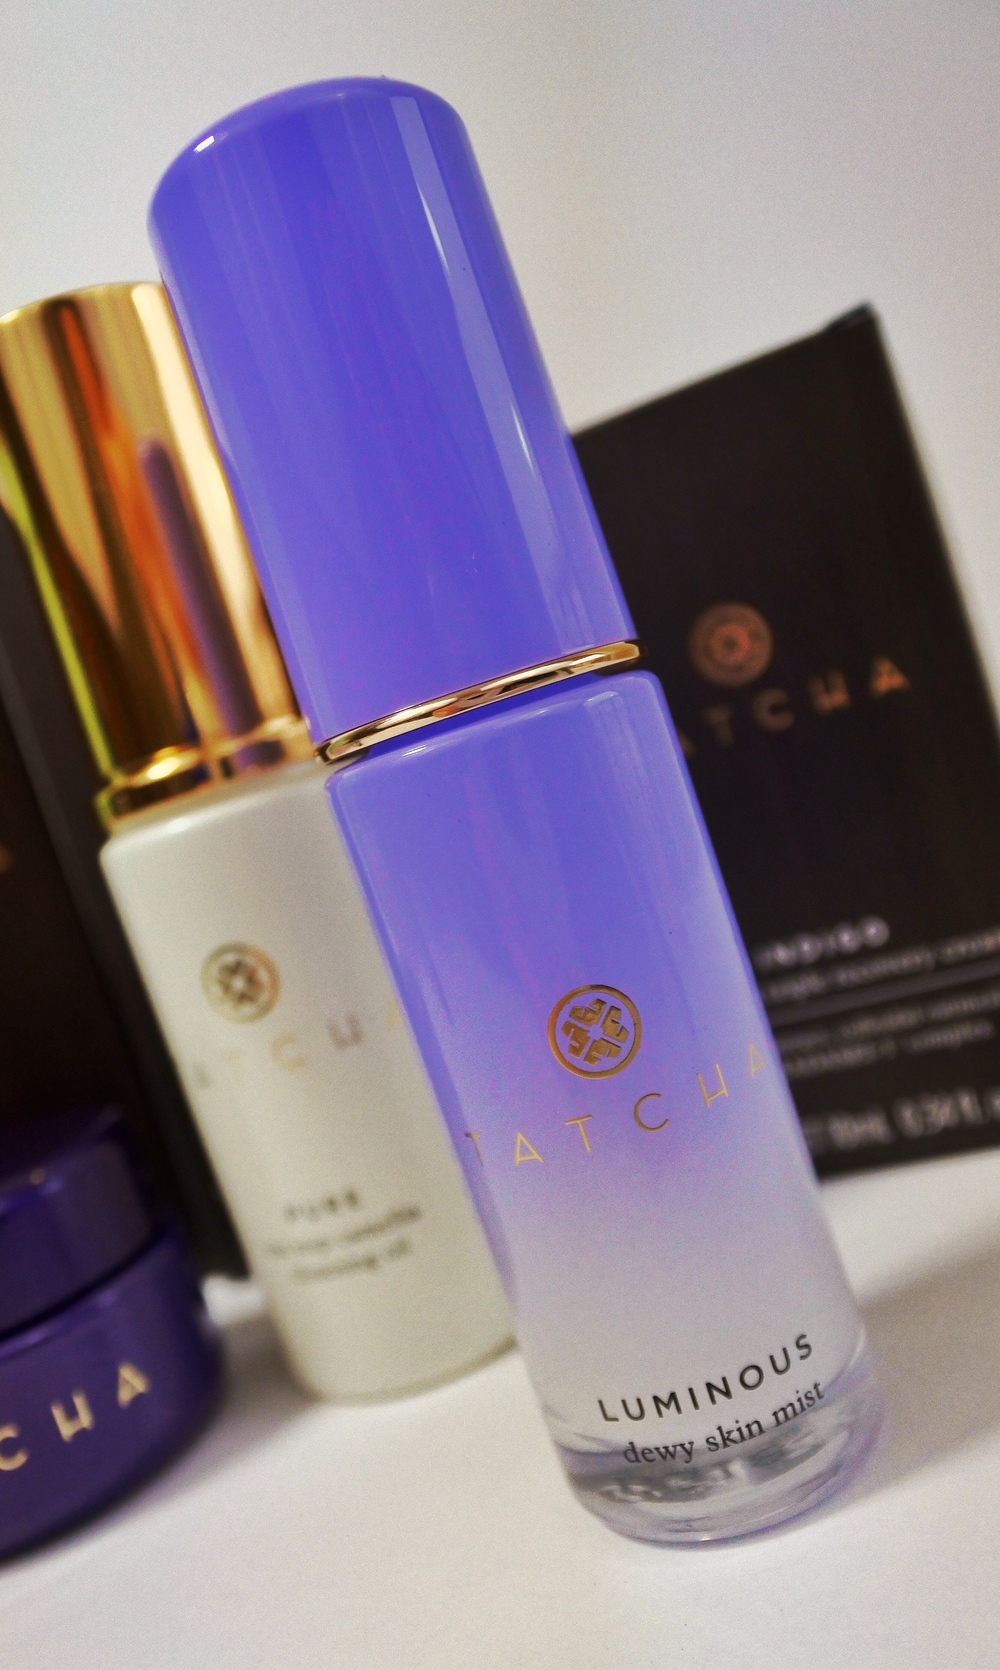 Tatcha Mist Available at -  Tatcha  (full & travel size),  Sephora  (full size only).  Photo shows 0.4oz travel size.